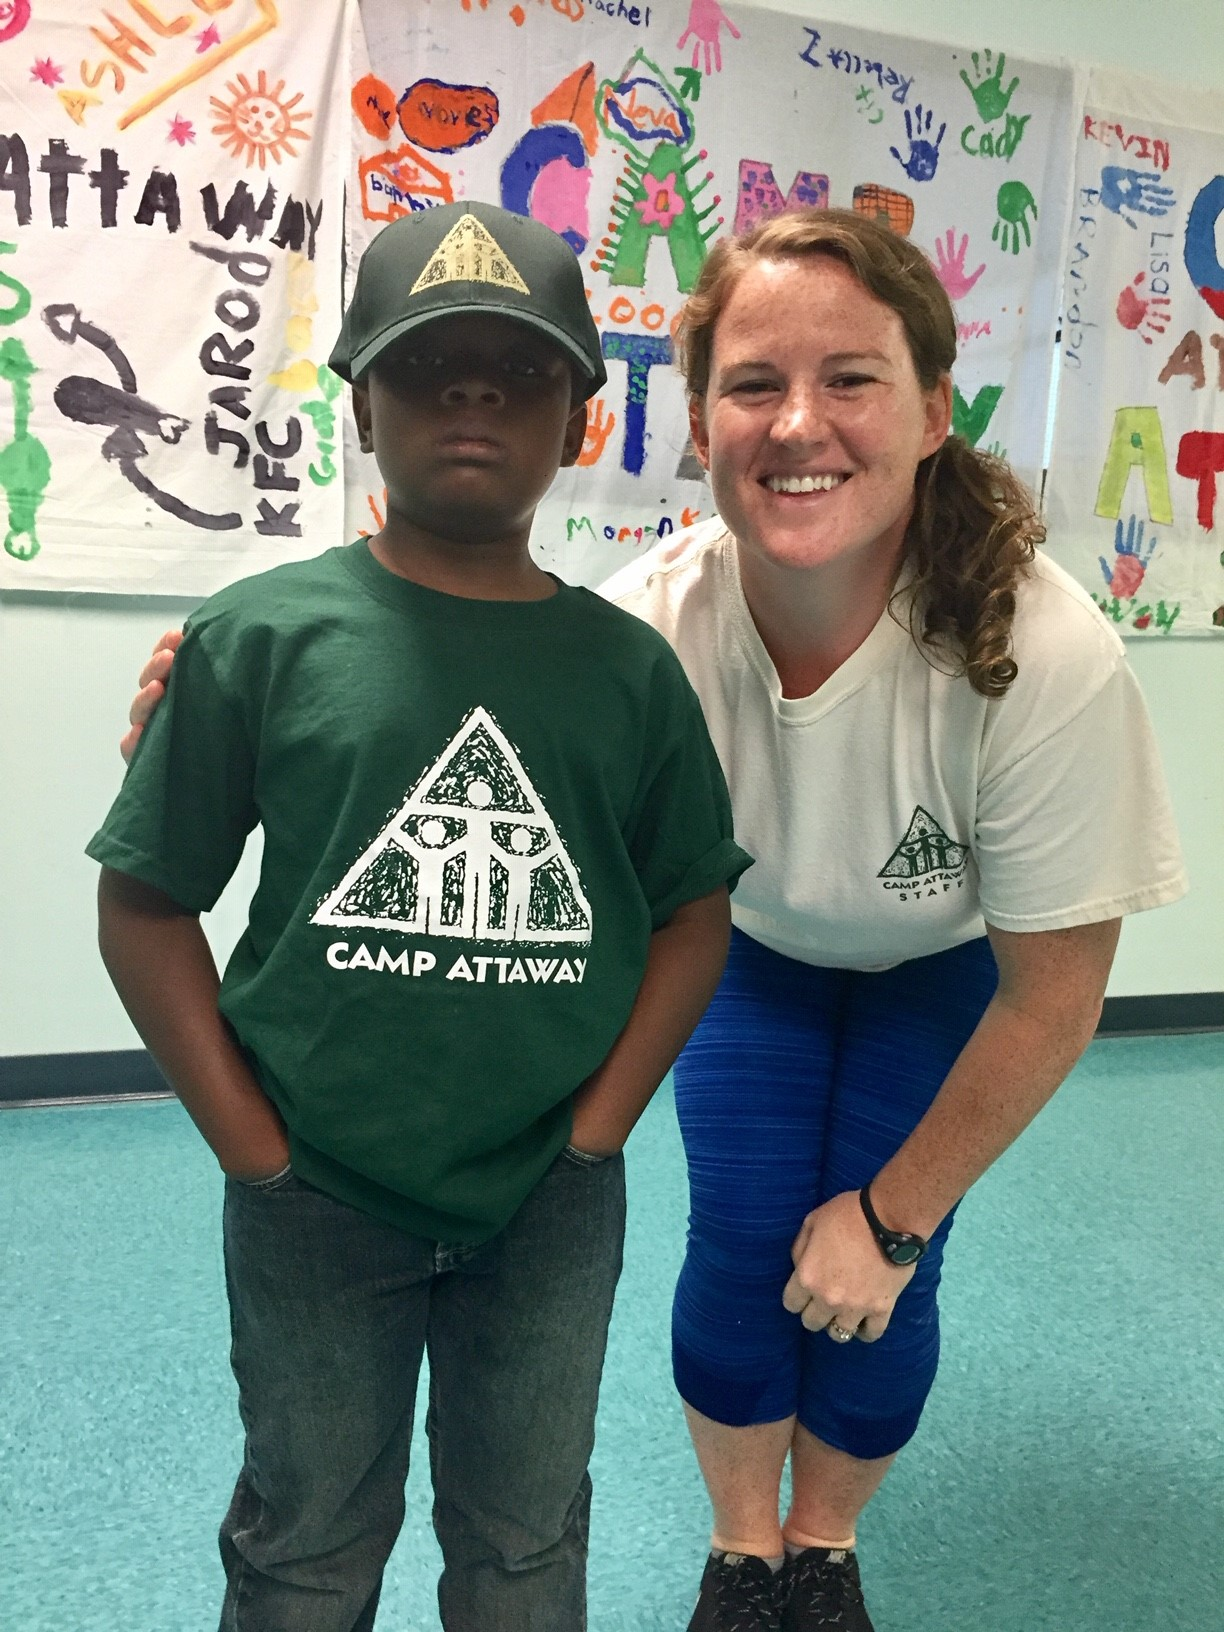 a child posing with a counselor